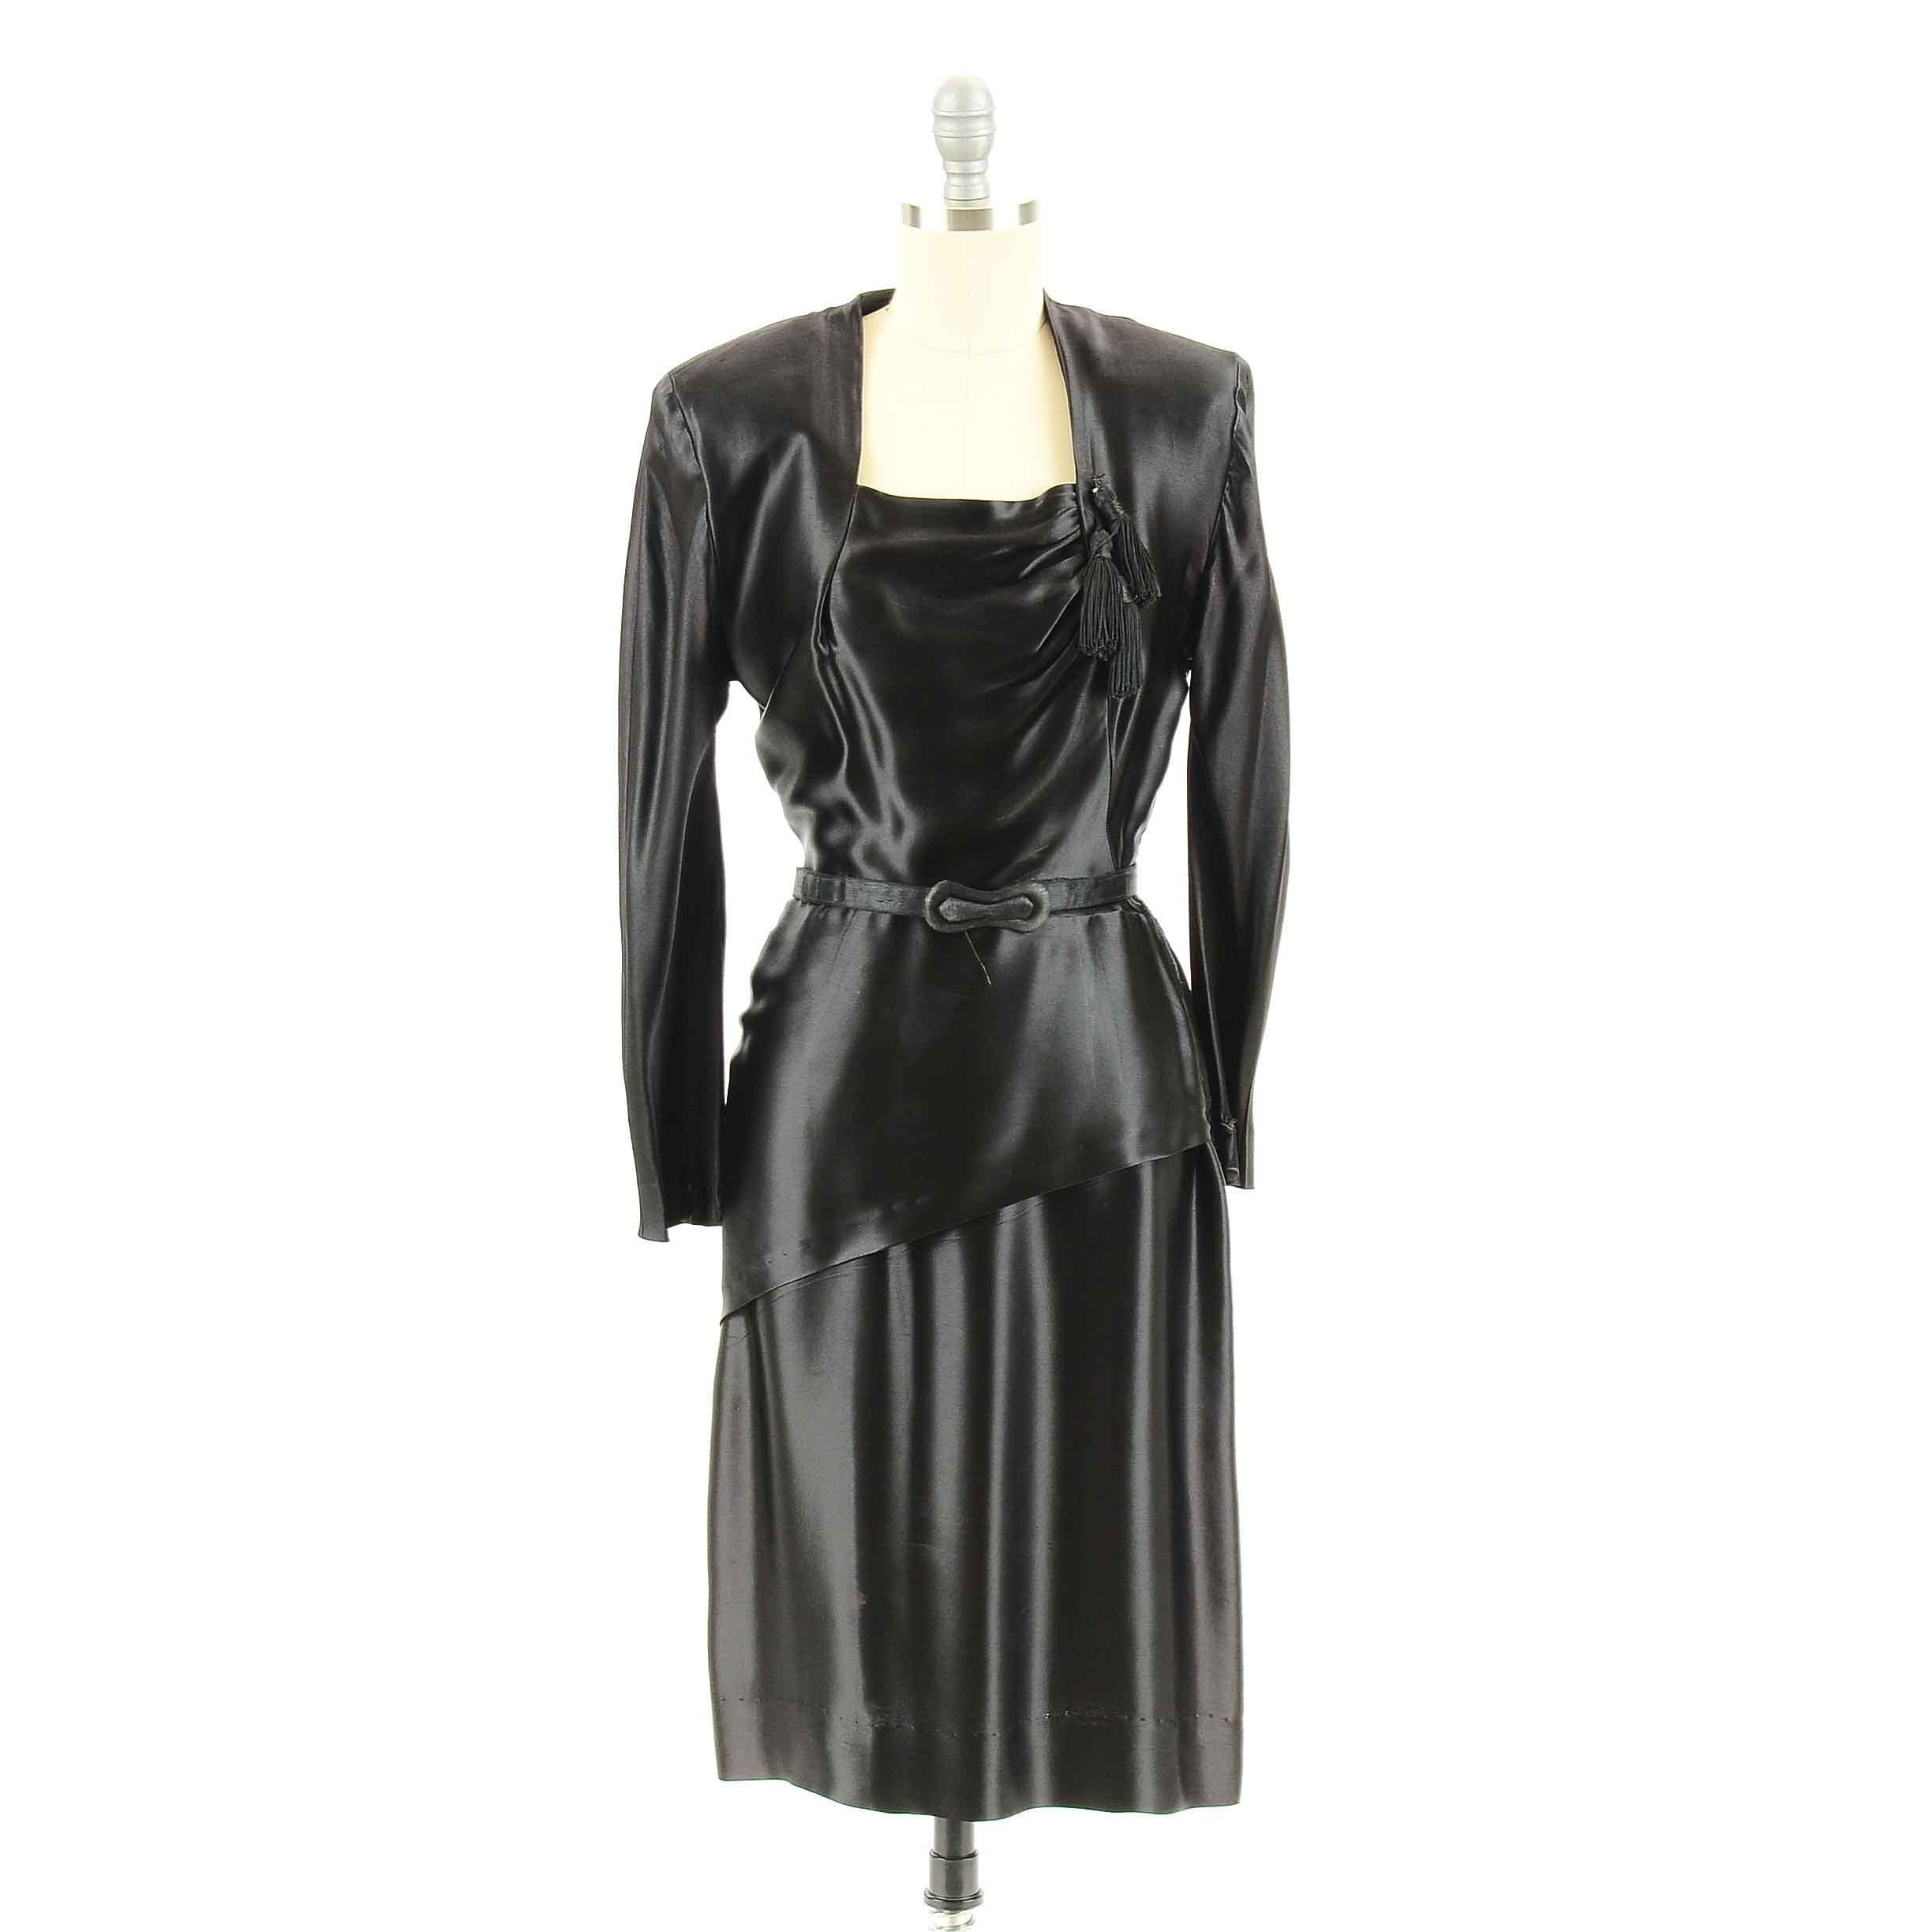 Vintage 1920s Satin Evening Dress